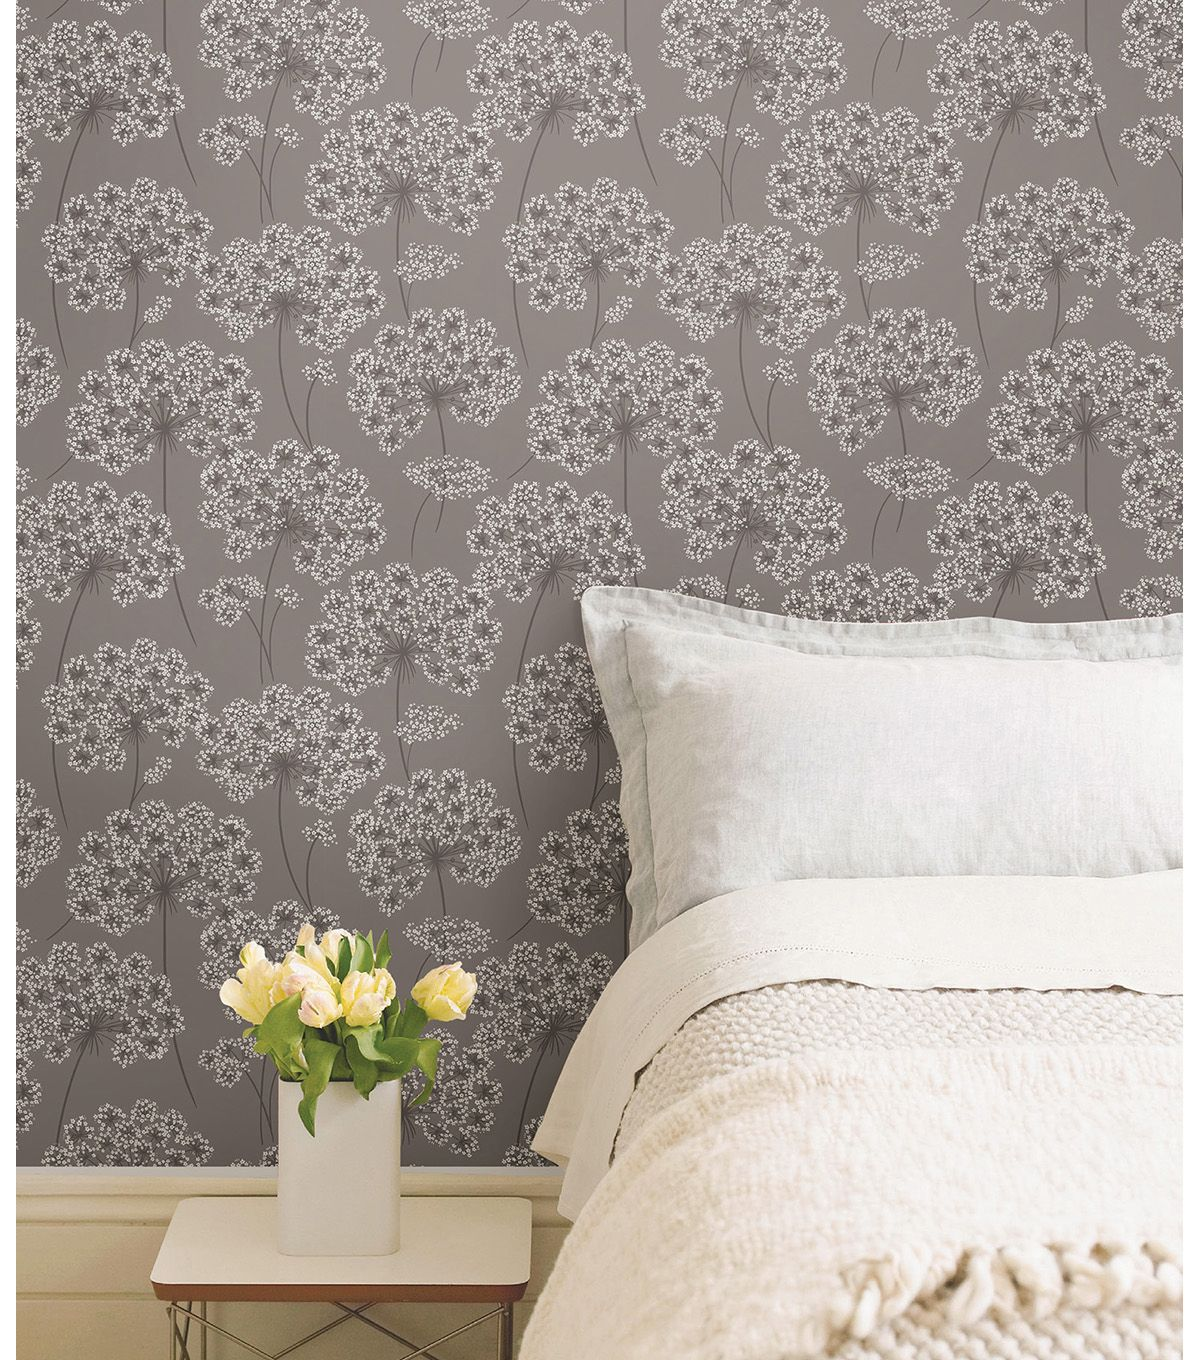 I Want This For A Wall In My Bedroom Wallpops Nuwallpaper Grey Angelica Peel Stick Wallpapernull Peel And Stick Wallpaper Grey Wallpaper Home Decor